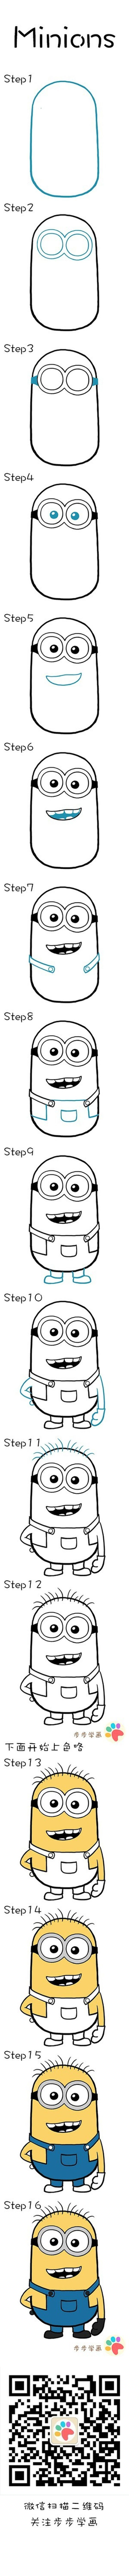 Learn How To Draw Minions Minion Drawing Easy Drawings Cute Drawings